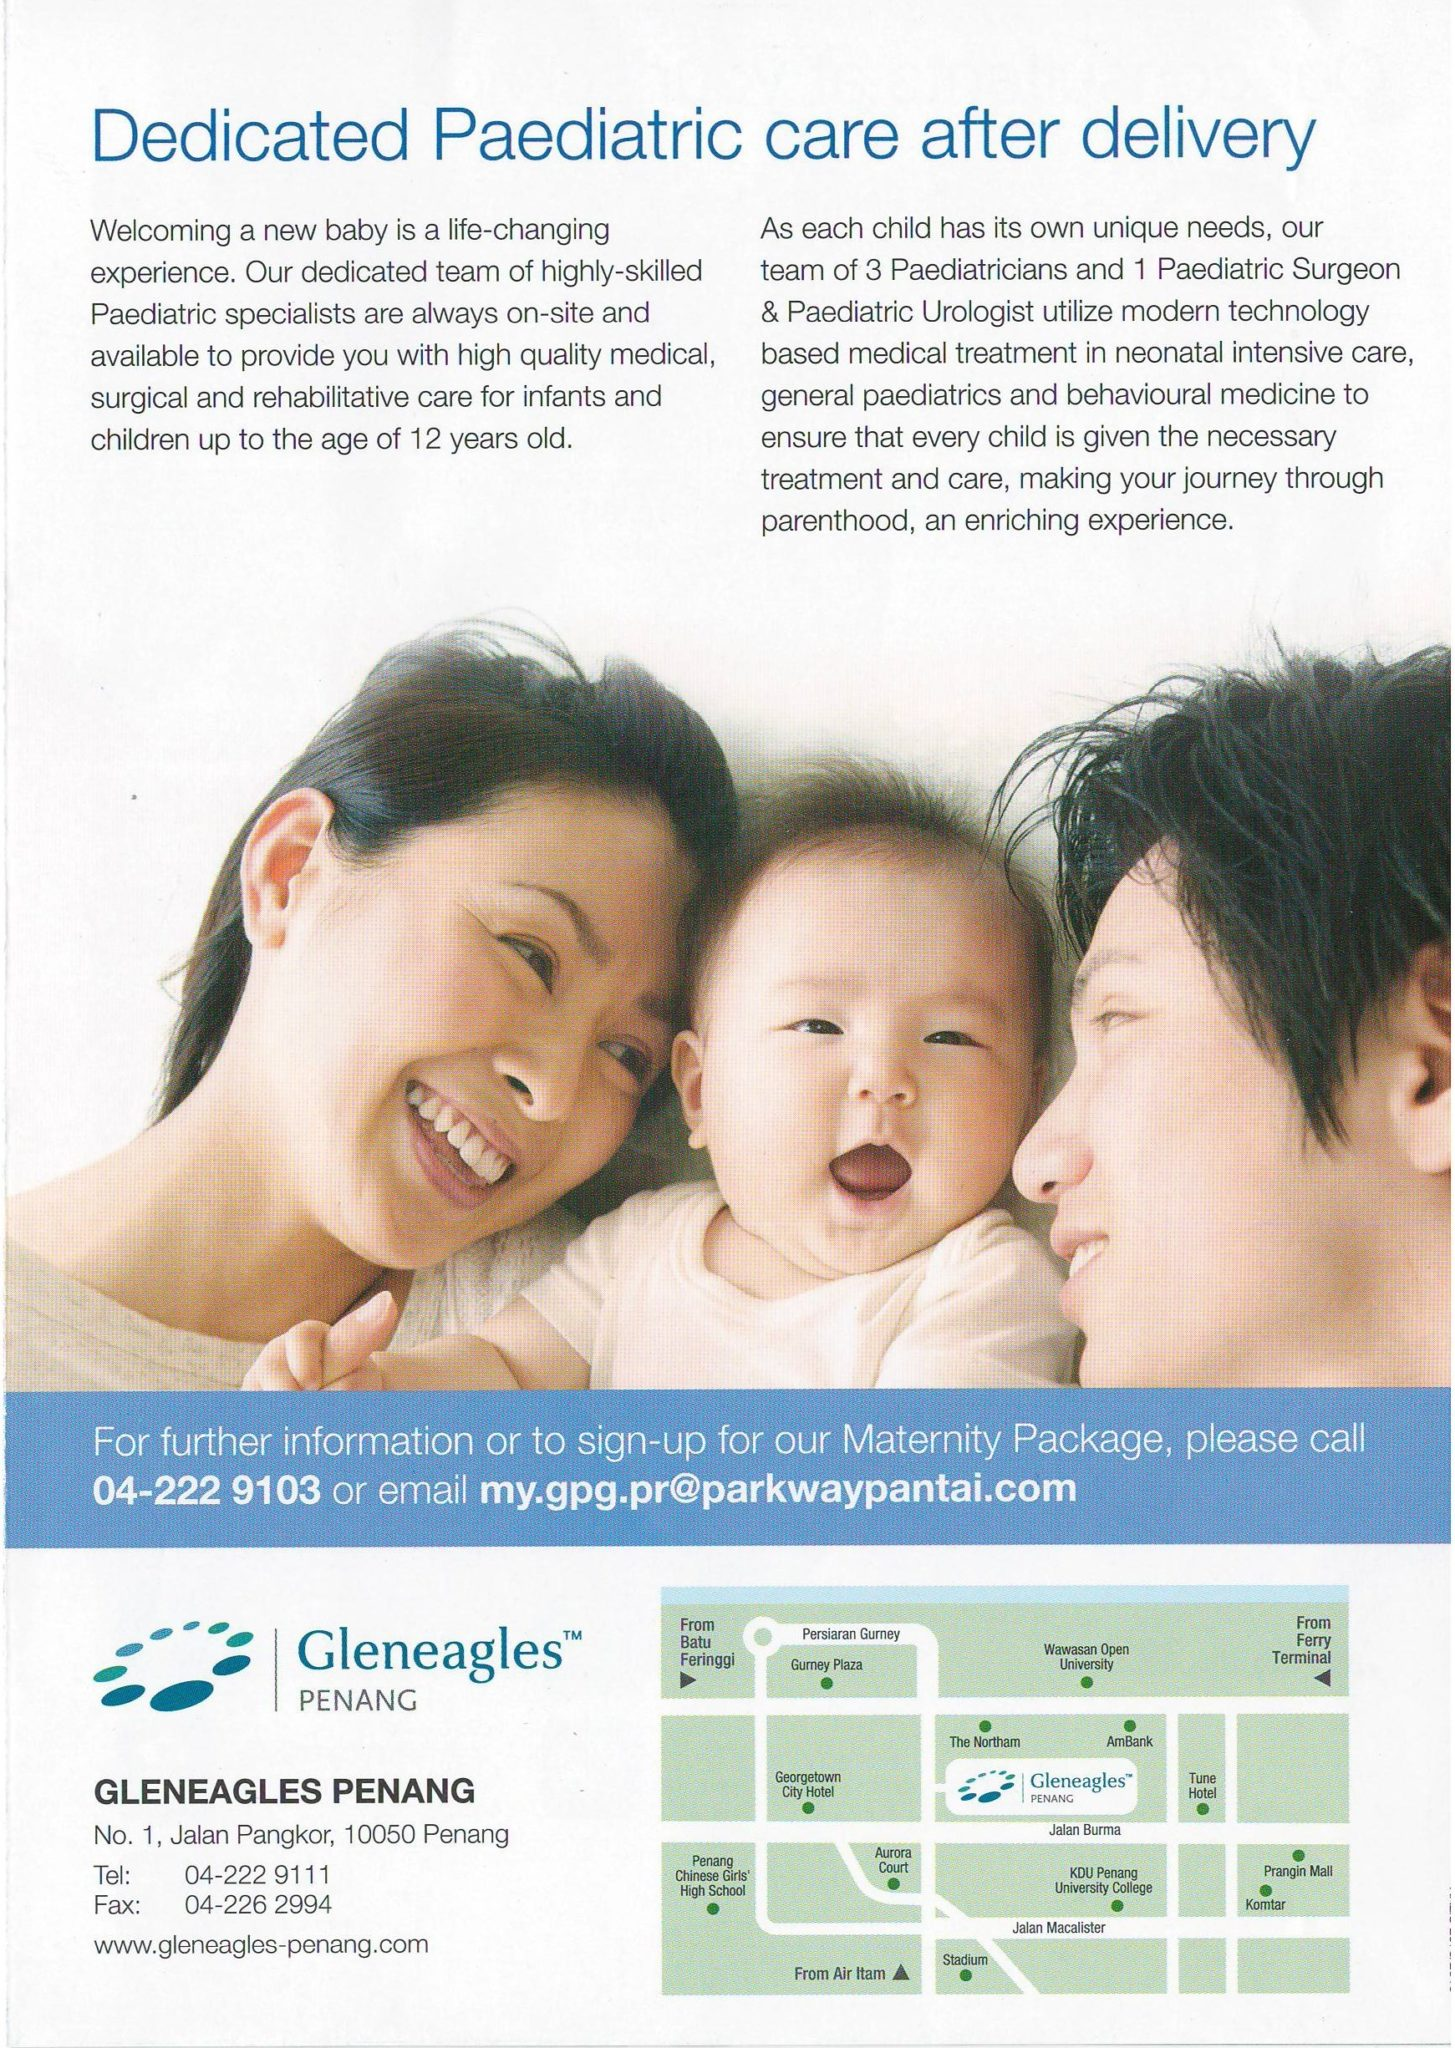 Gleneagles Penang 2017 Maternity Pacakge Page 4 - Paediatric care after delivery